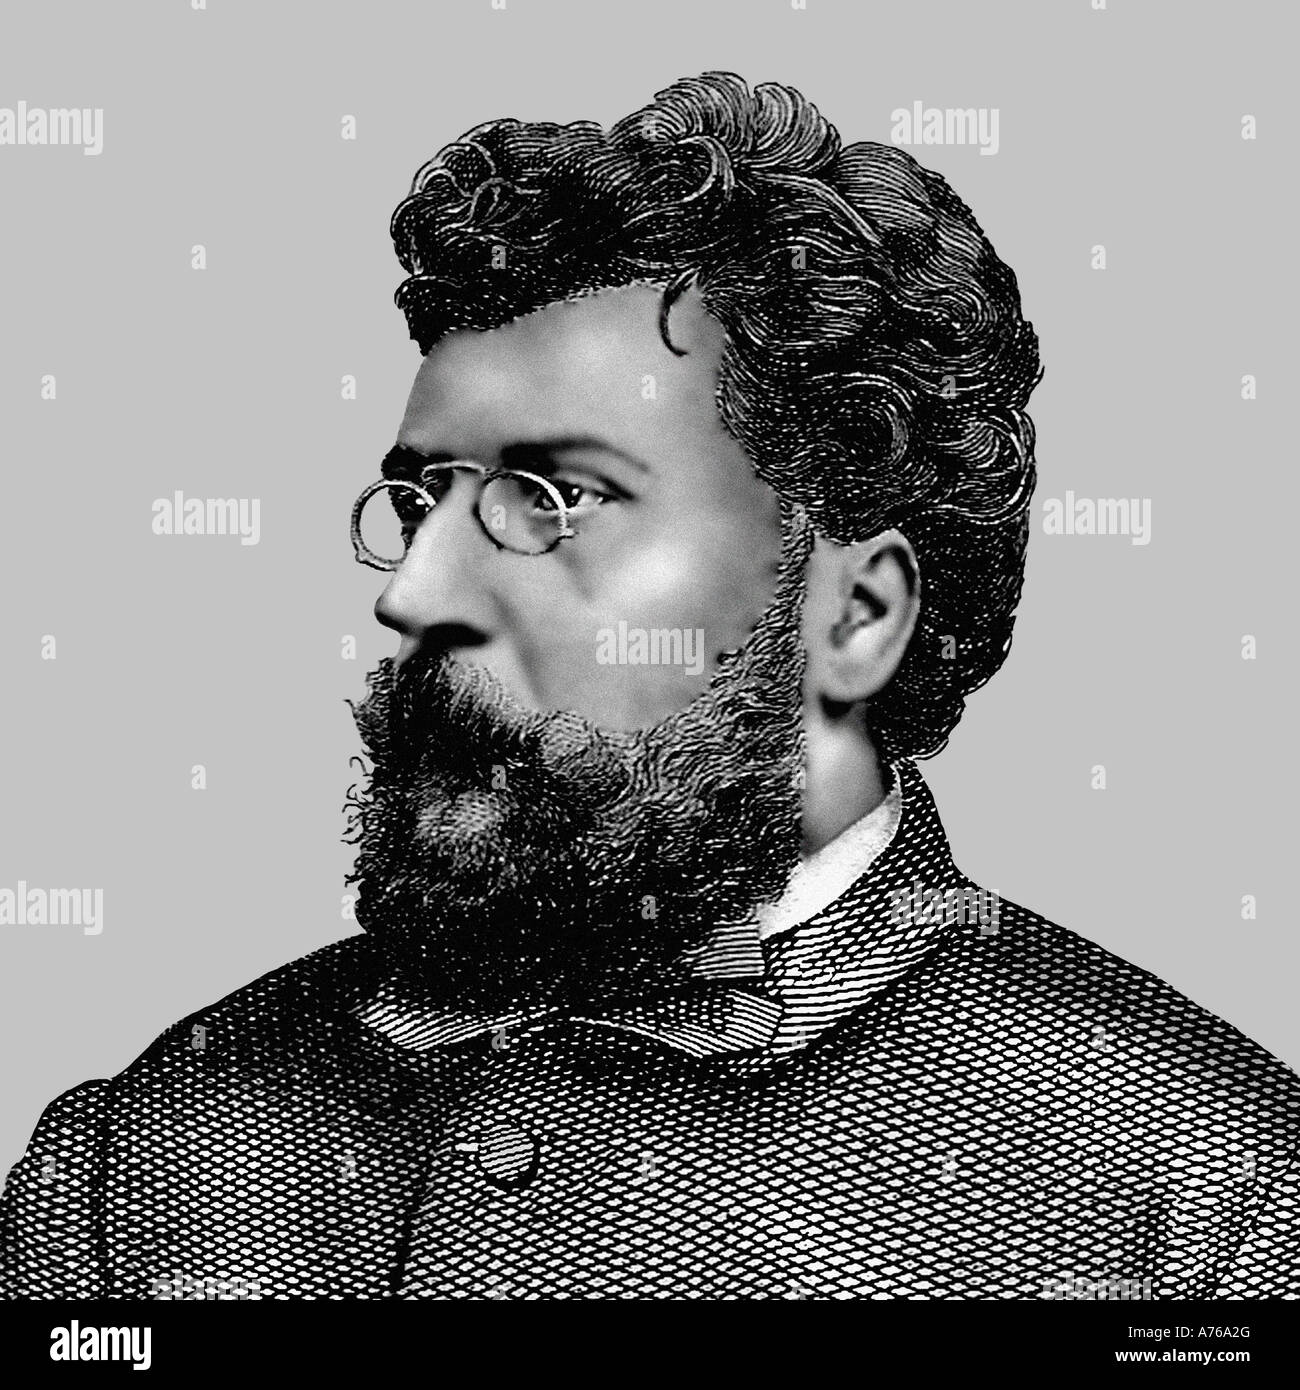 a biography of georges bizet a french composer of the romantic era Composer (biographies) georges bizet (1838-1875) was born in paris, france bizet was a celebrated composer and pianist of the romantic era.